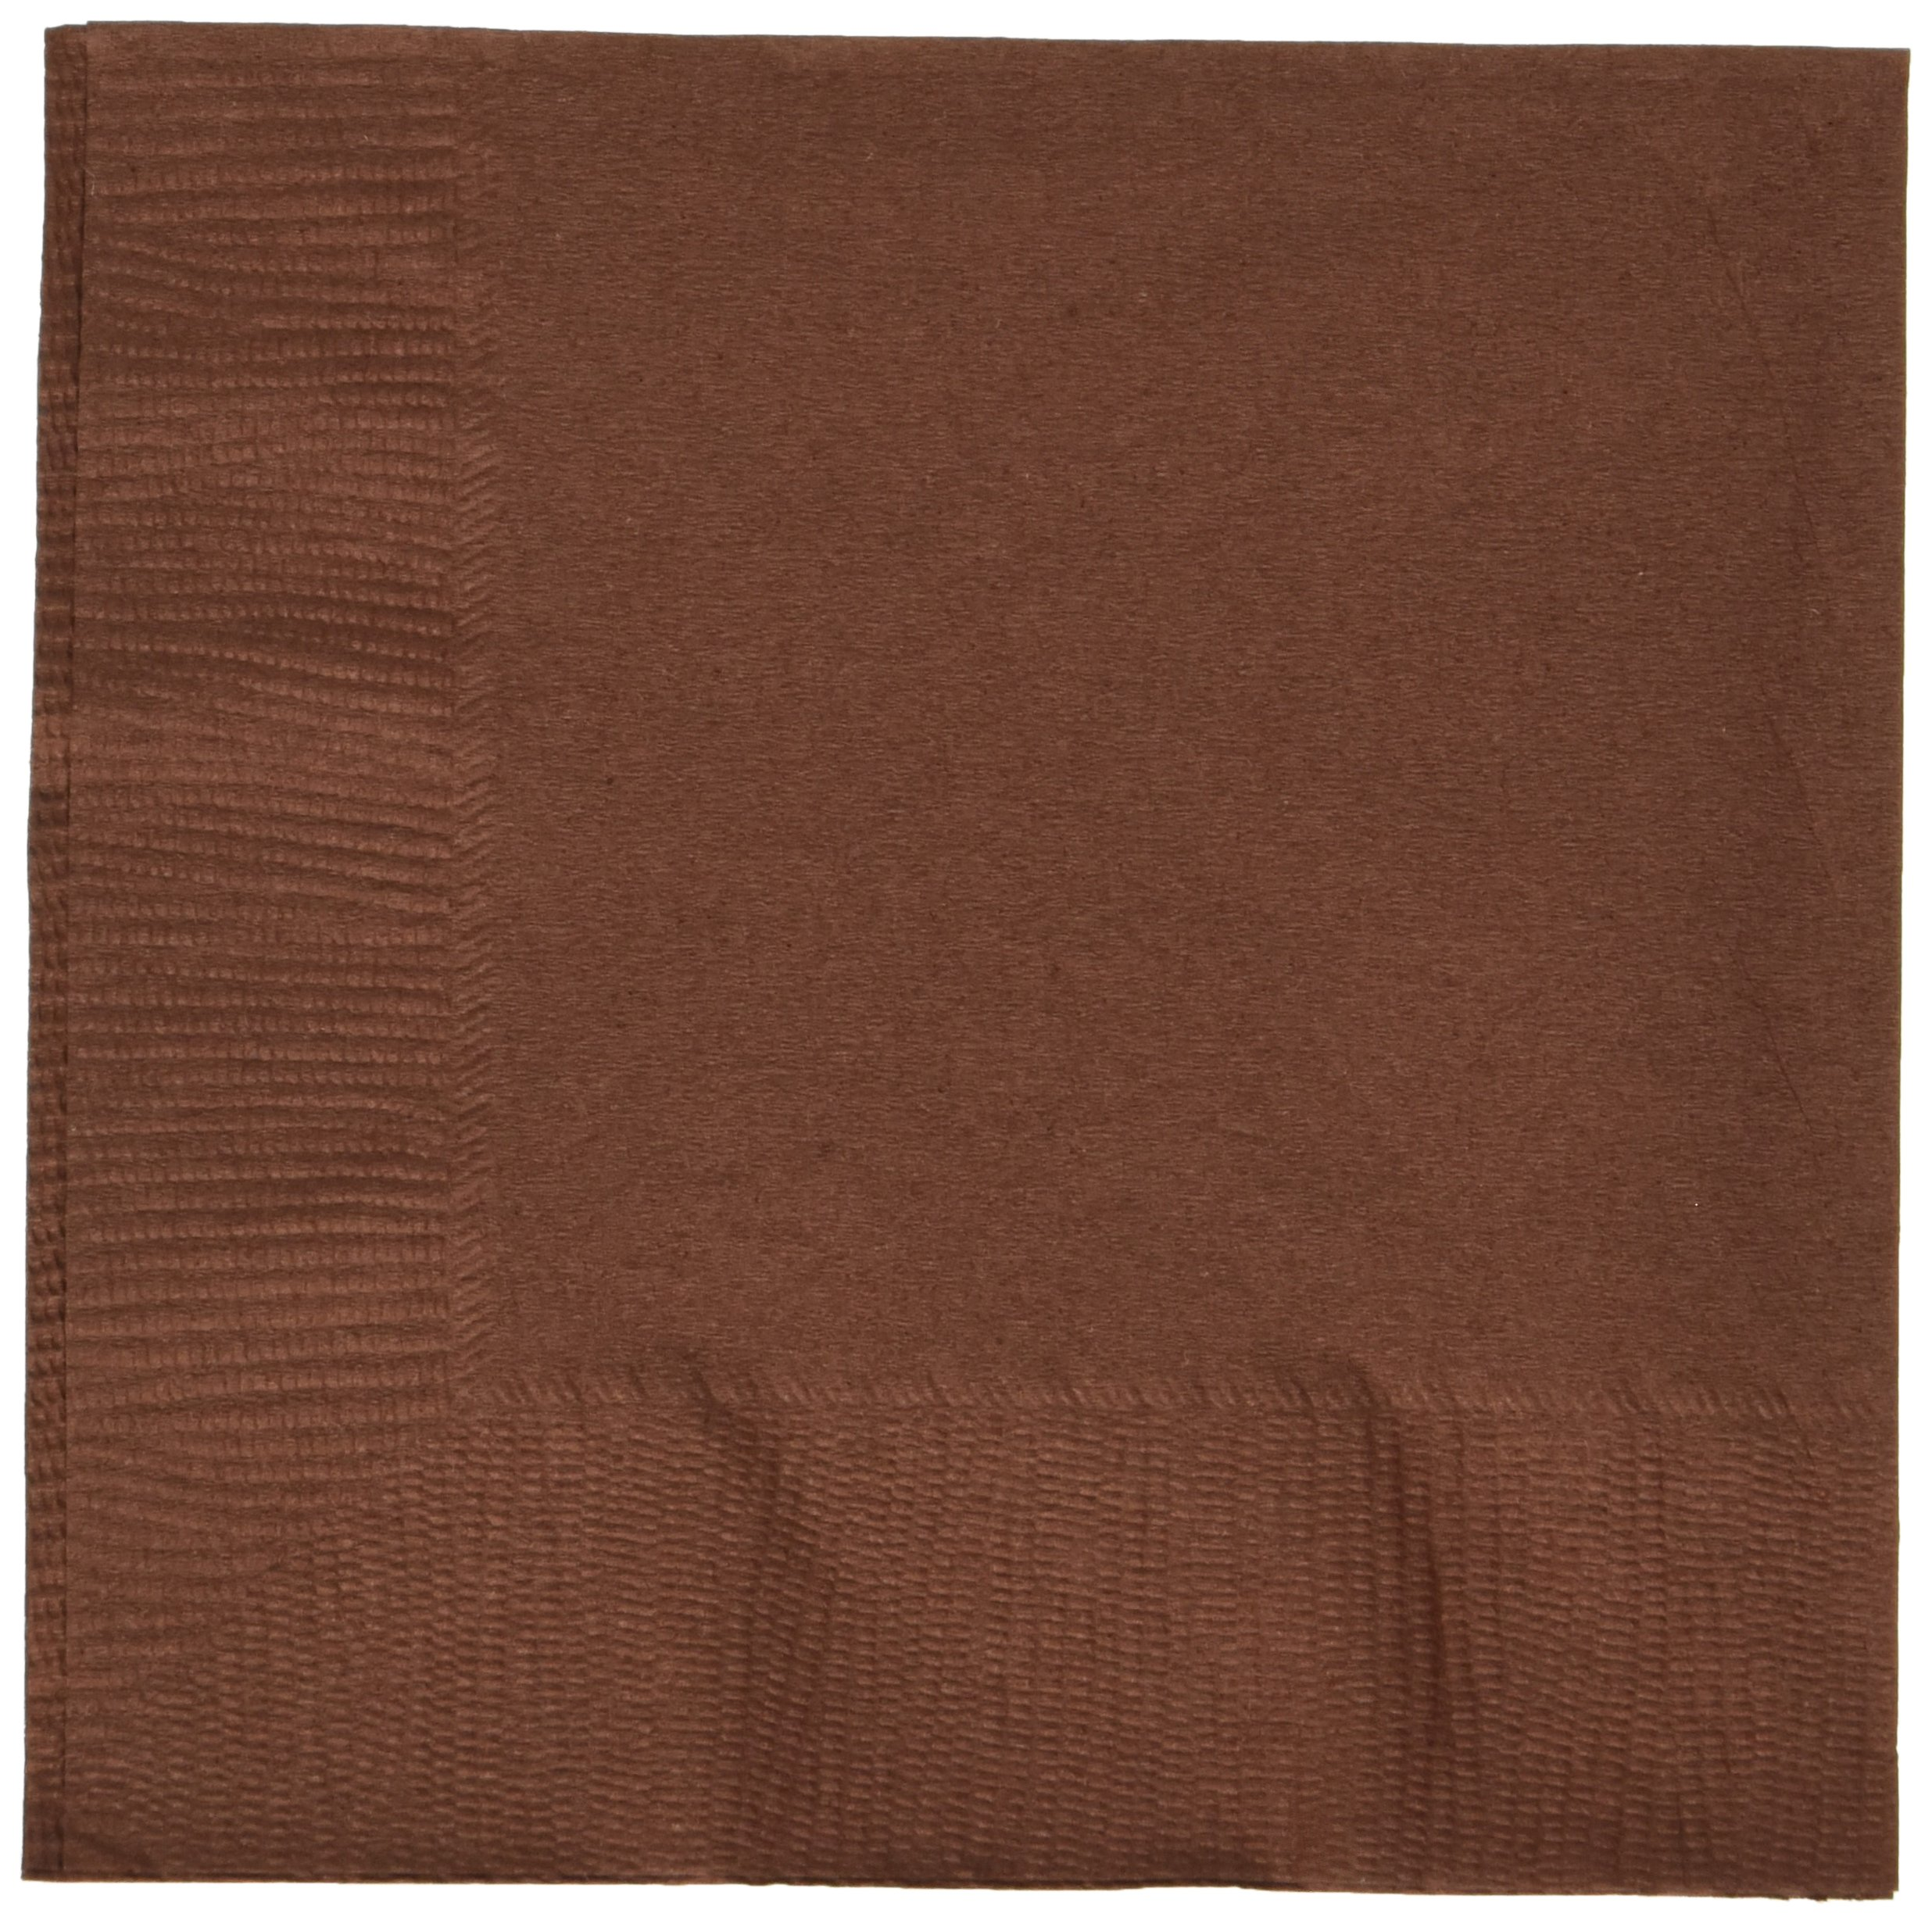 Chocolate Brown 3-Ply Beverage Napkins | Party Supply | 600 ct.